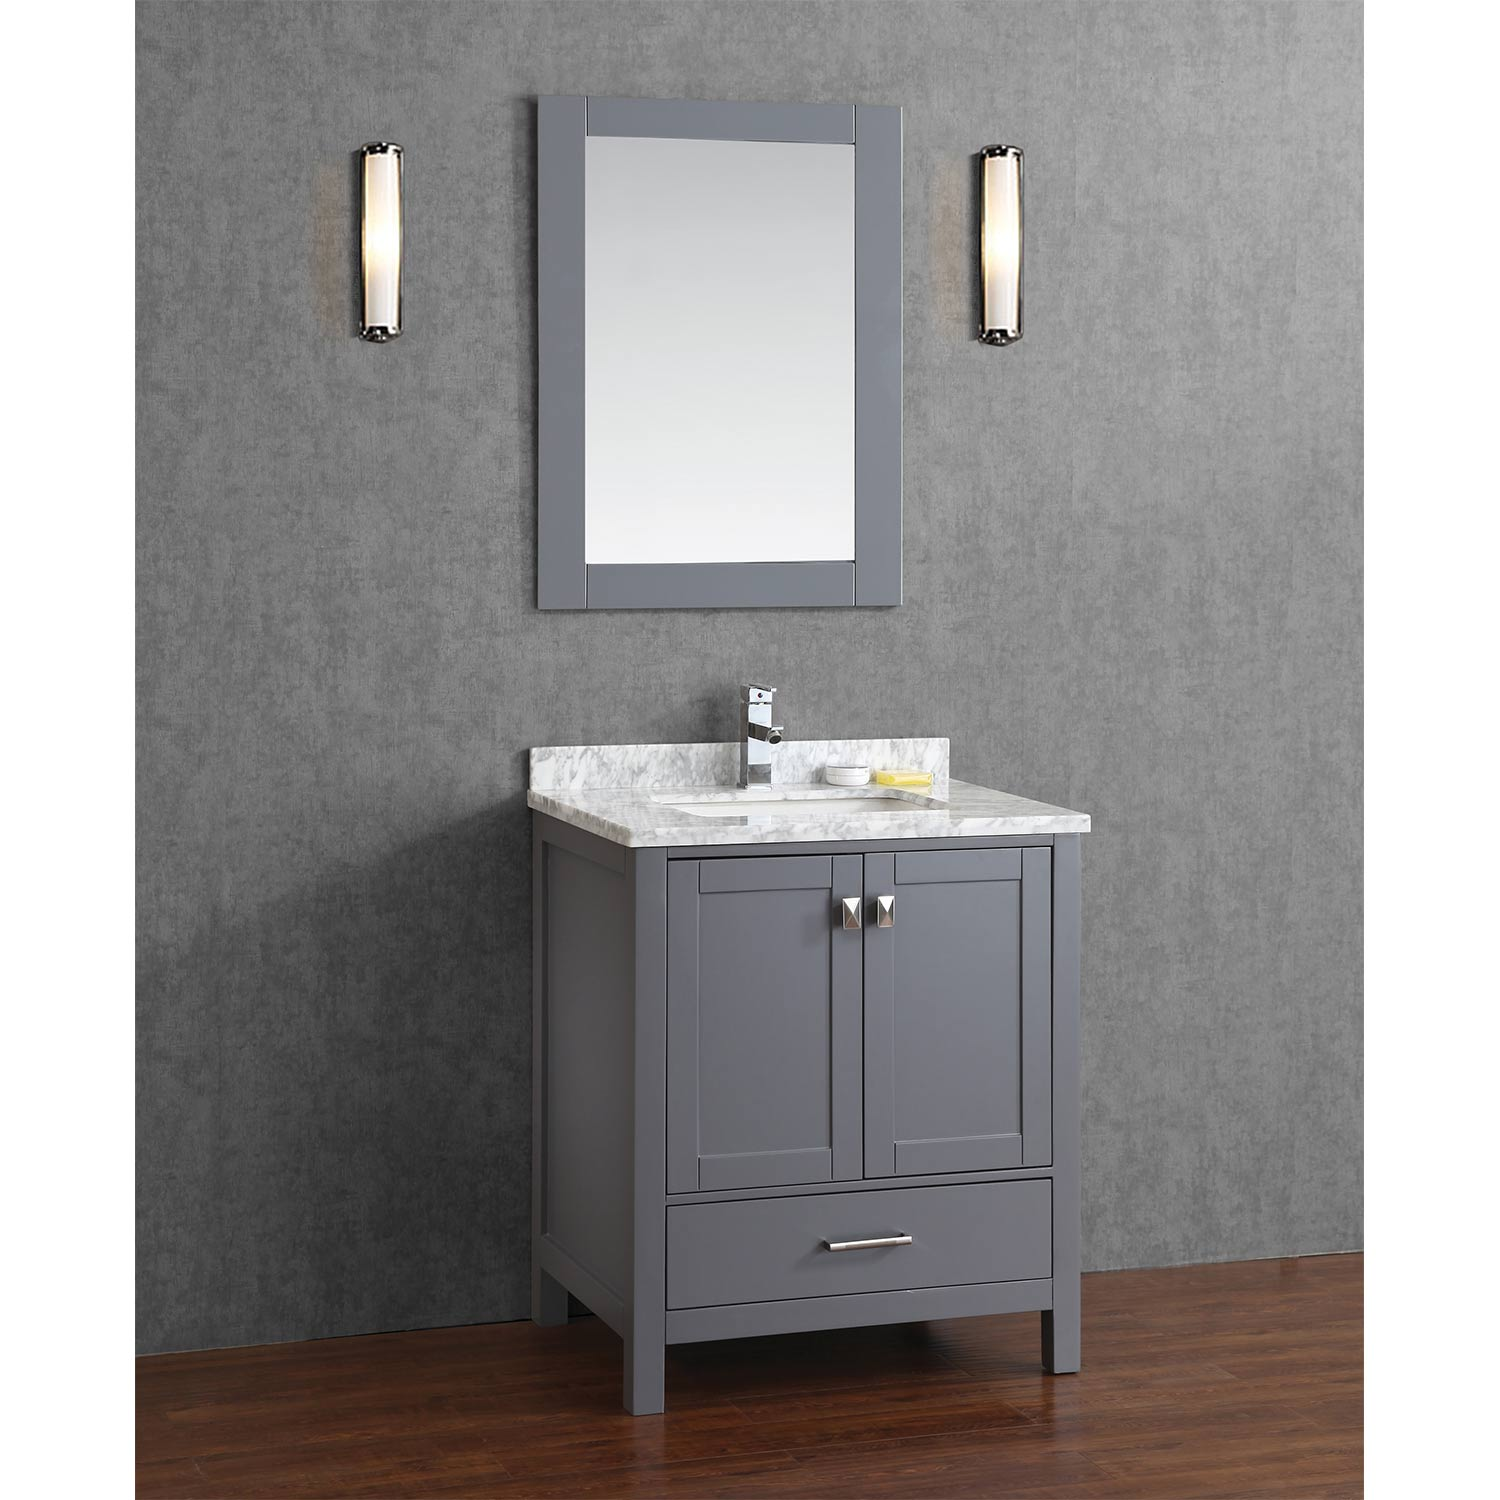 solid wood single bathroom vanity in charcoal grey hm 13001 30 wmsq cg